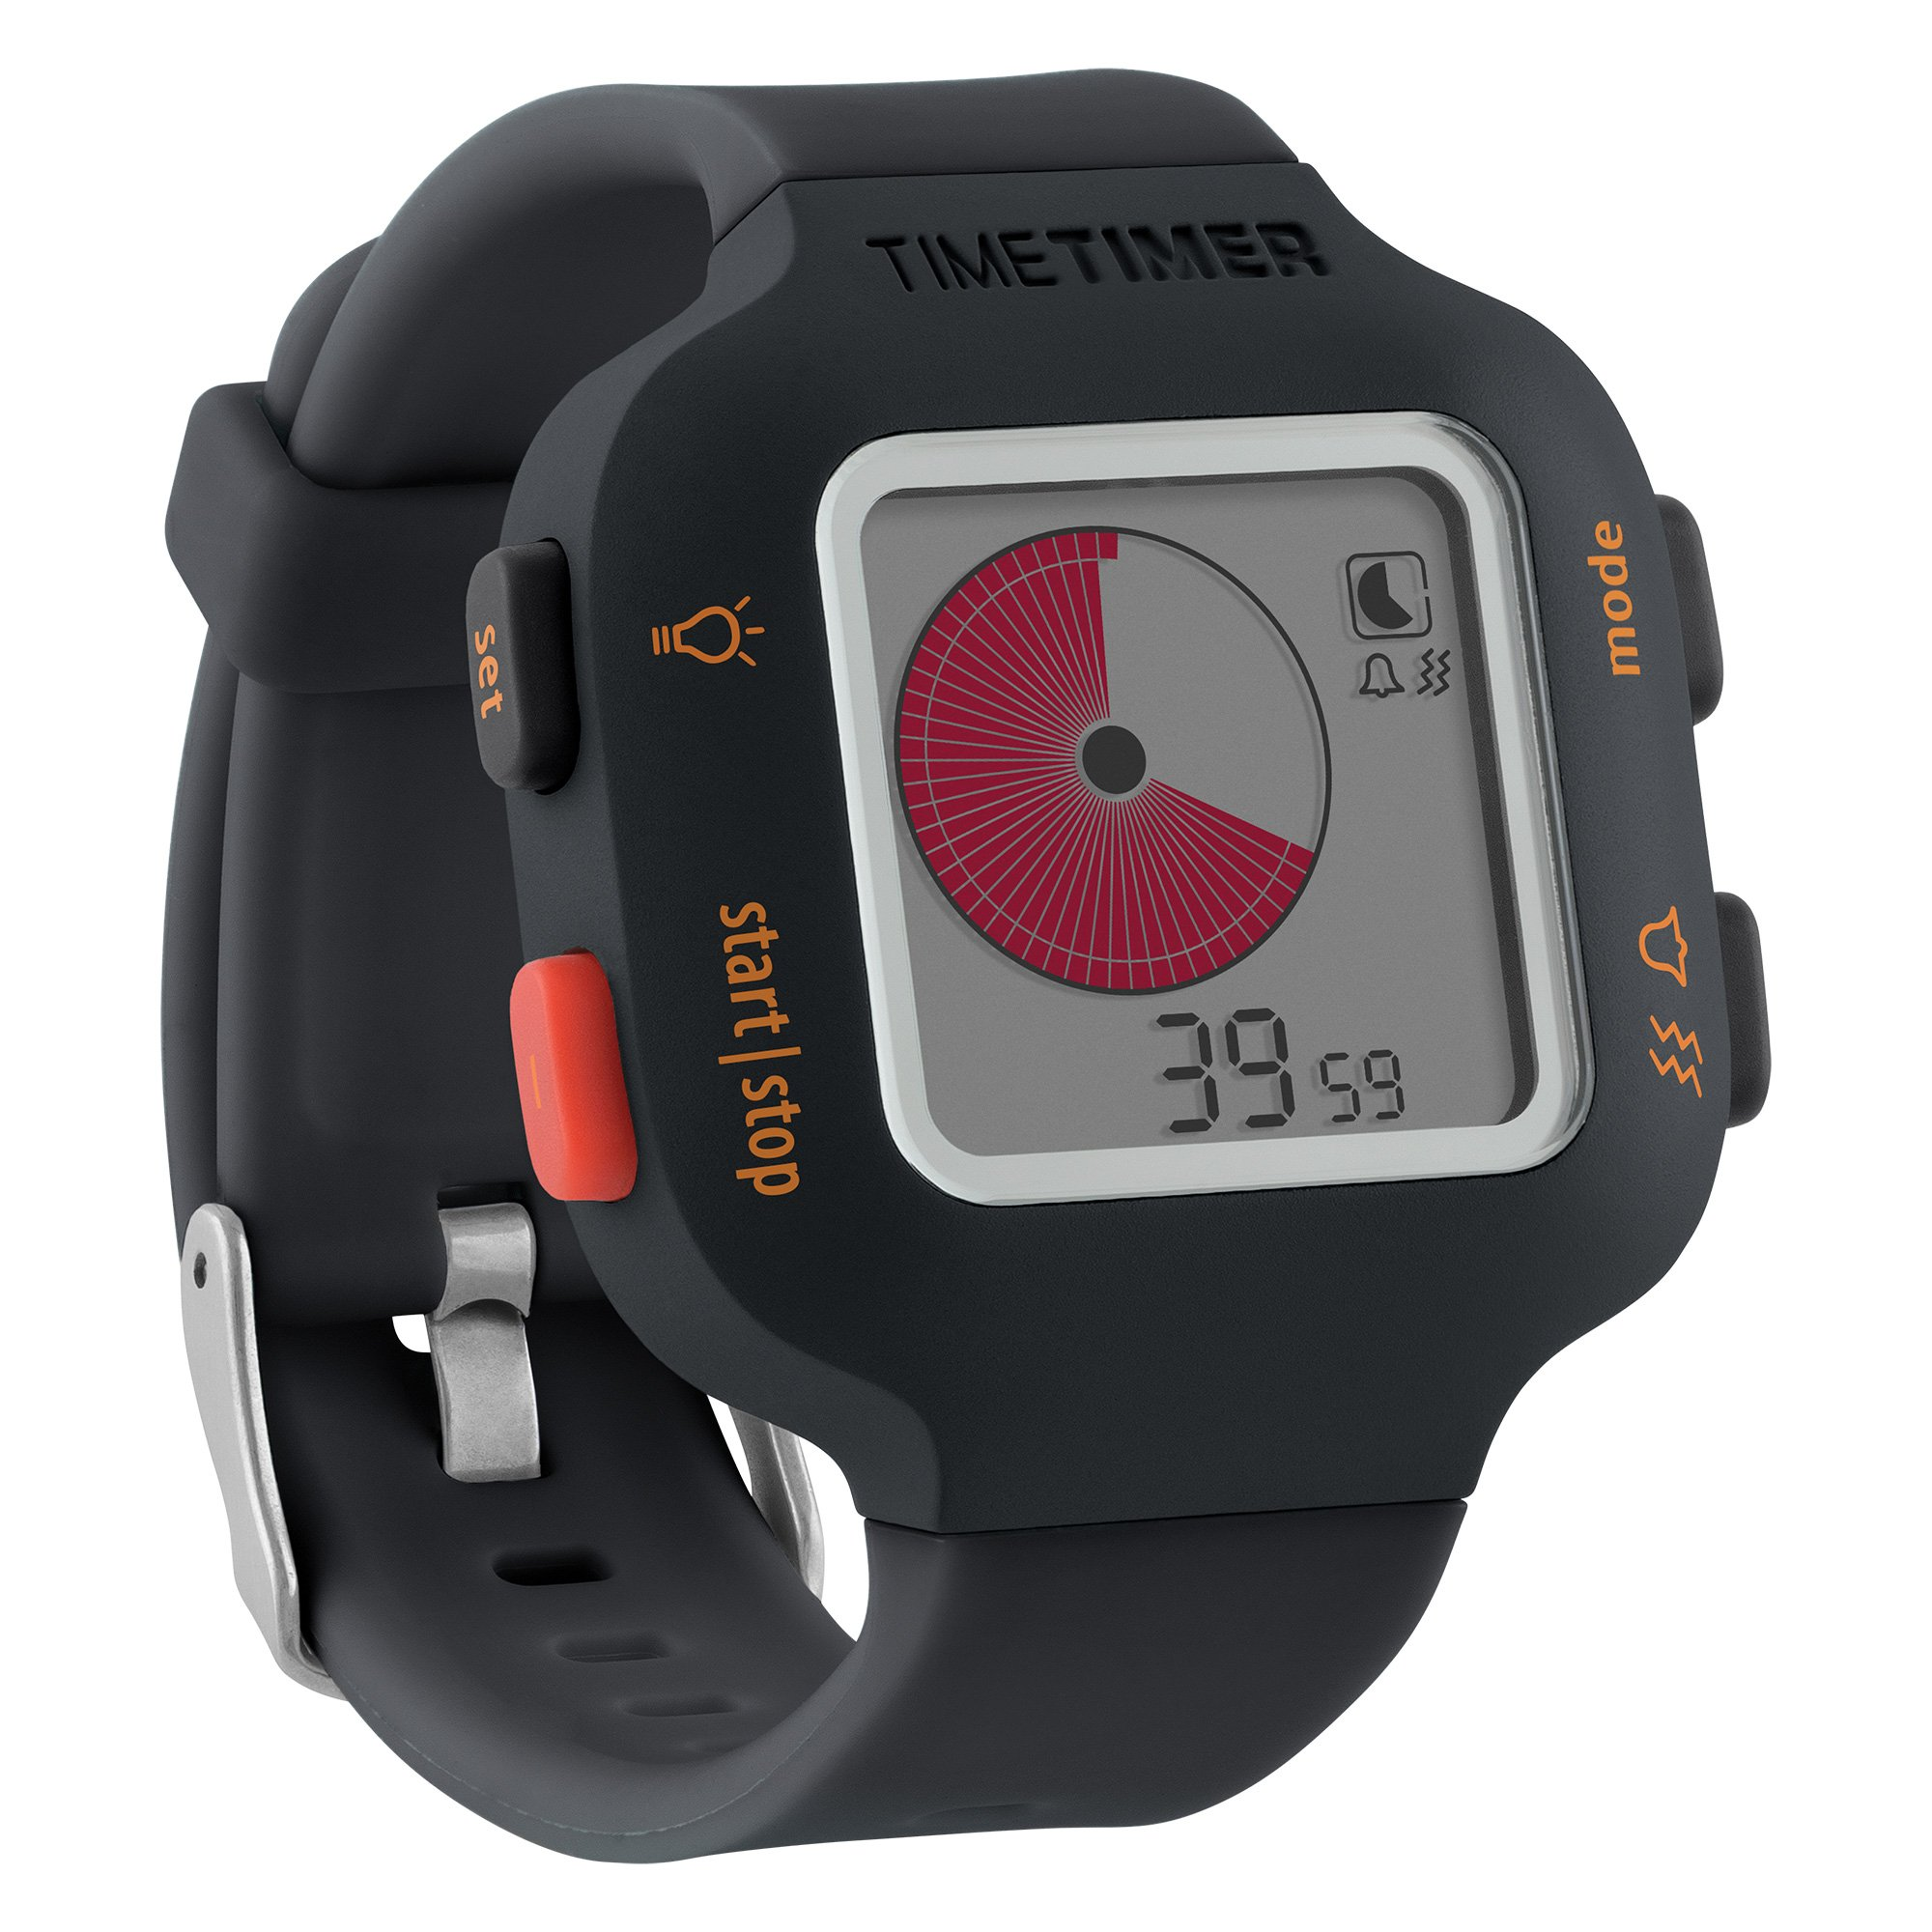 Time Timer Watch Plus (Charcoal), Visual Timer (Repeatable), Clock (Analog and Digital in 12 or 24 Hour), Alarm, Size Small by Time Timer